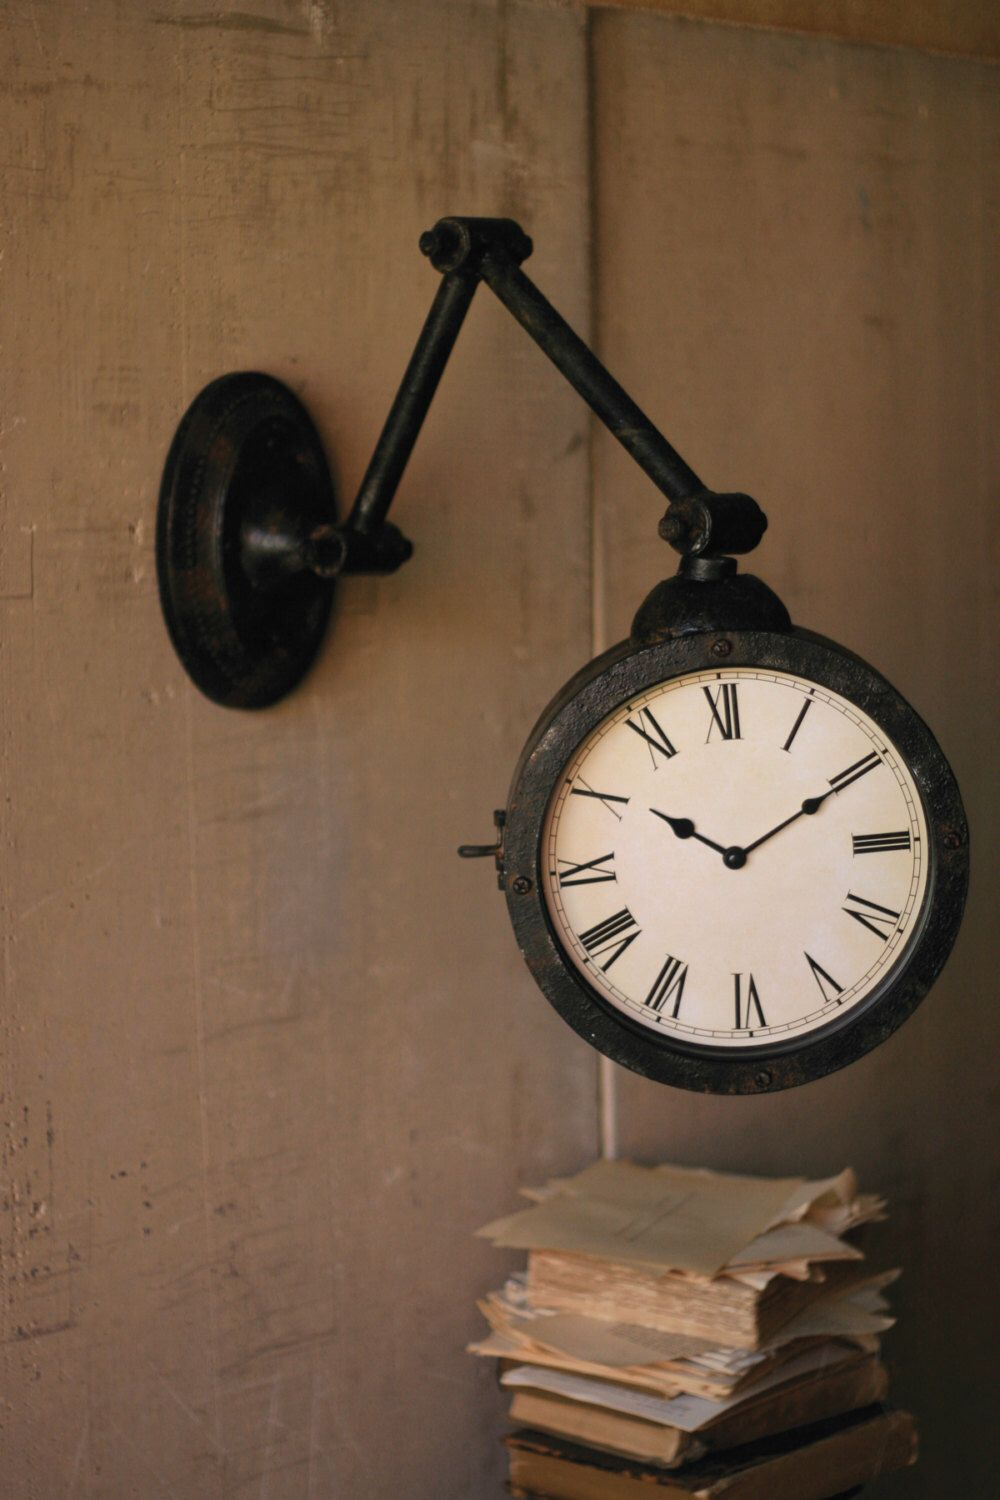 Metal Wall Clock by LesSpectacles on Etsy https://www.etsy.com/listing/266014553/metal-wall-clock